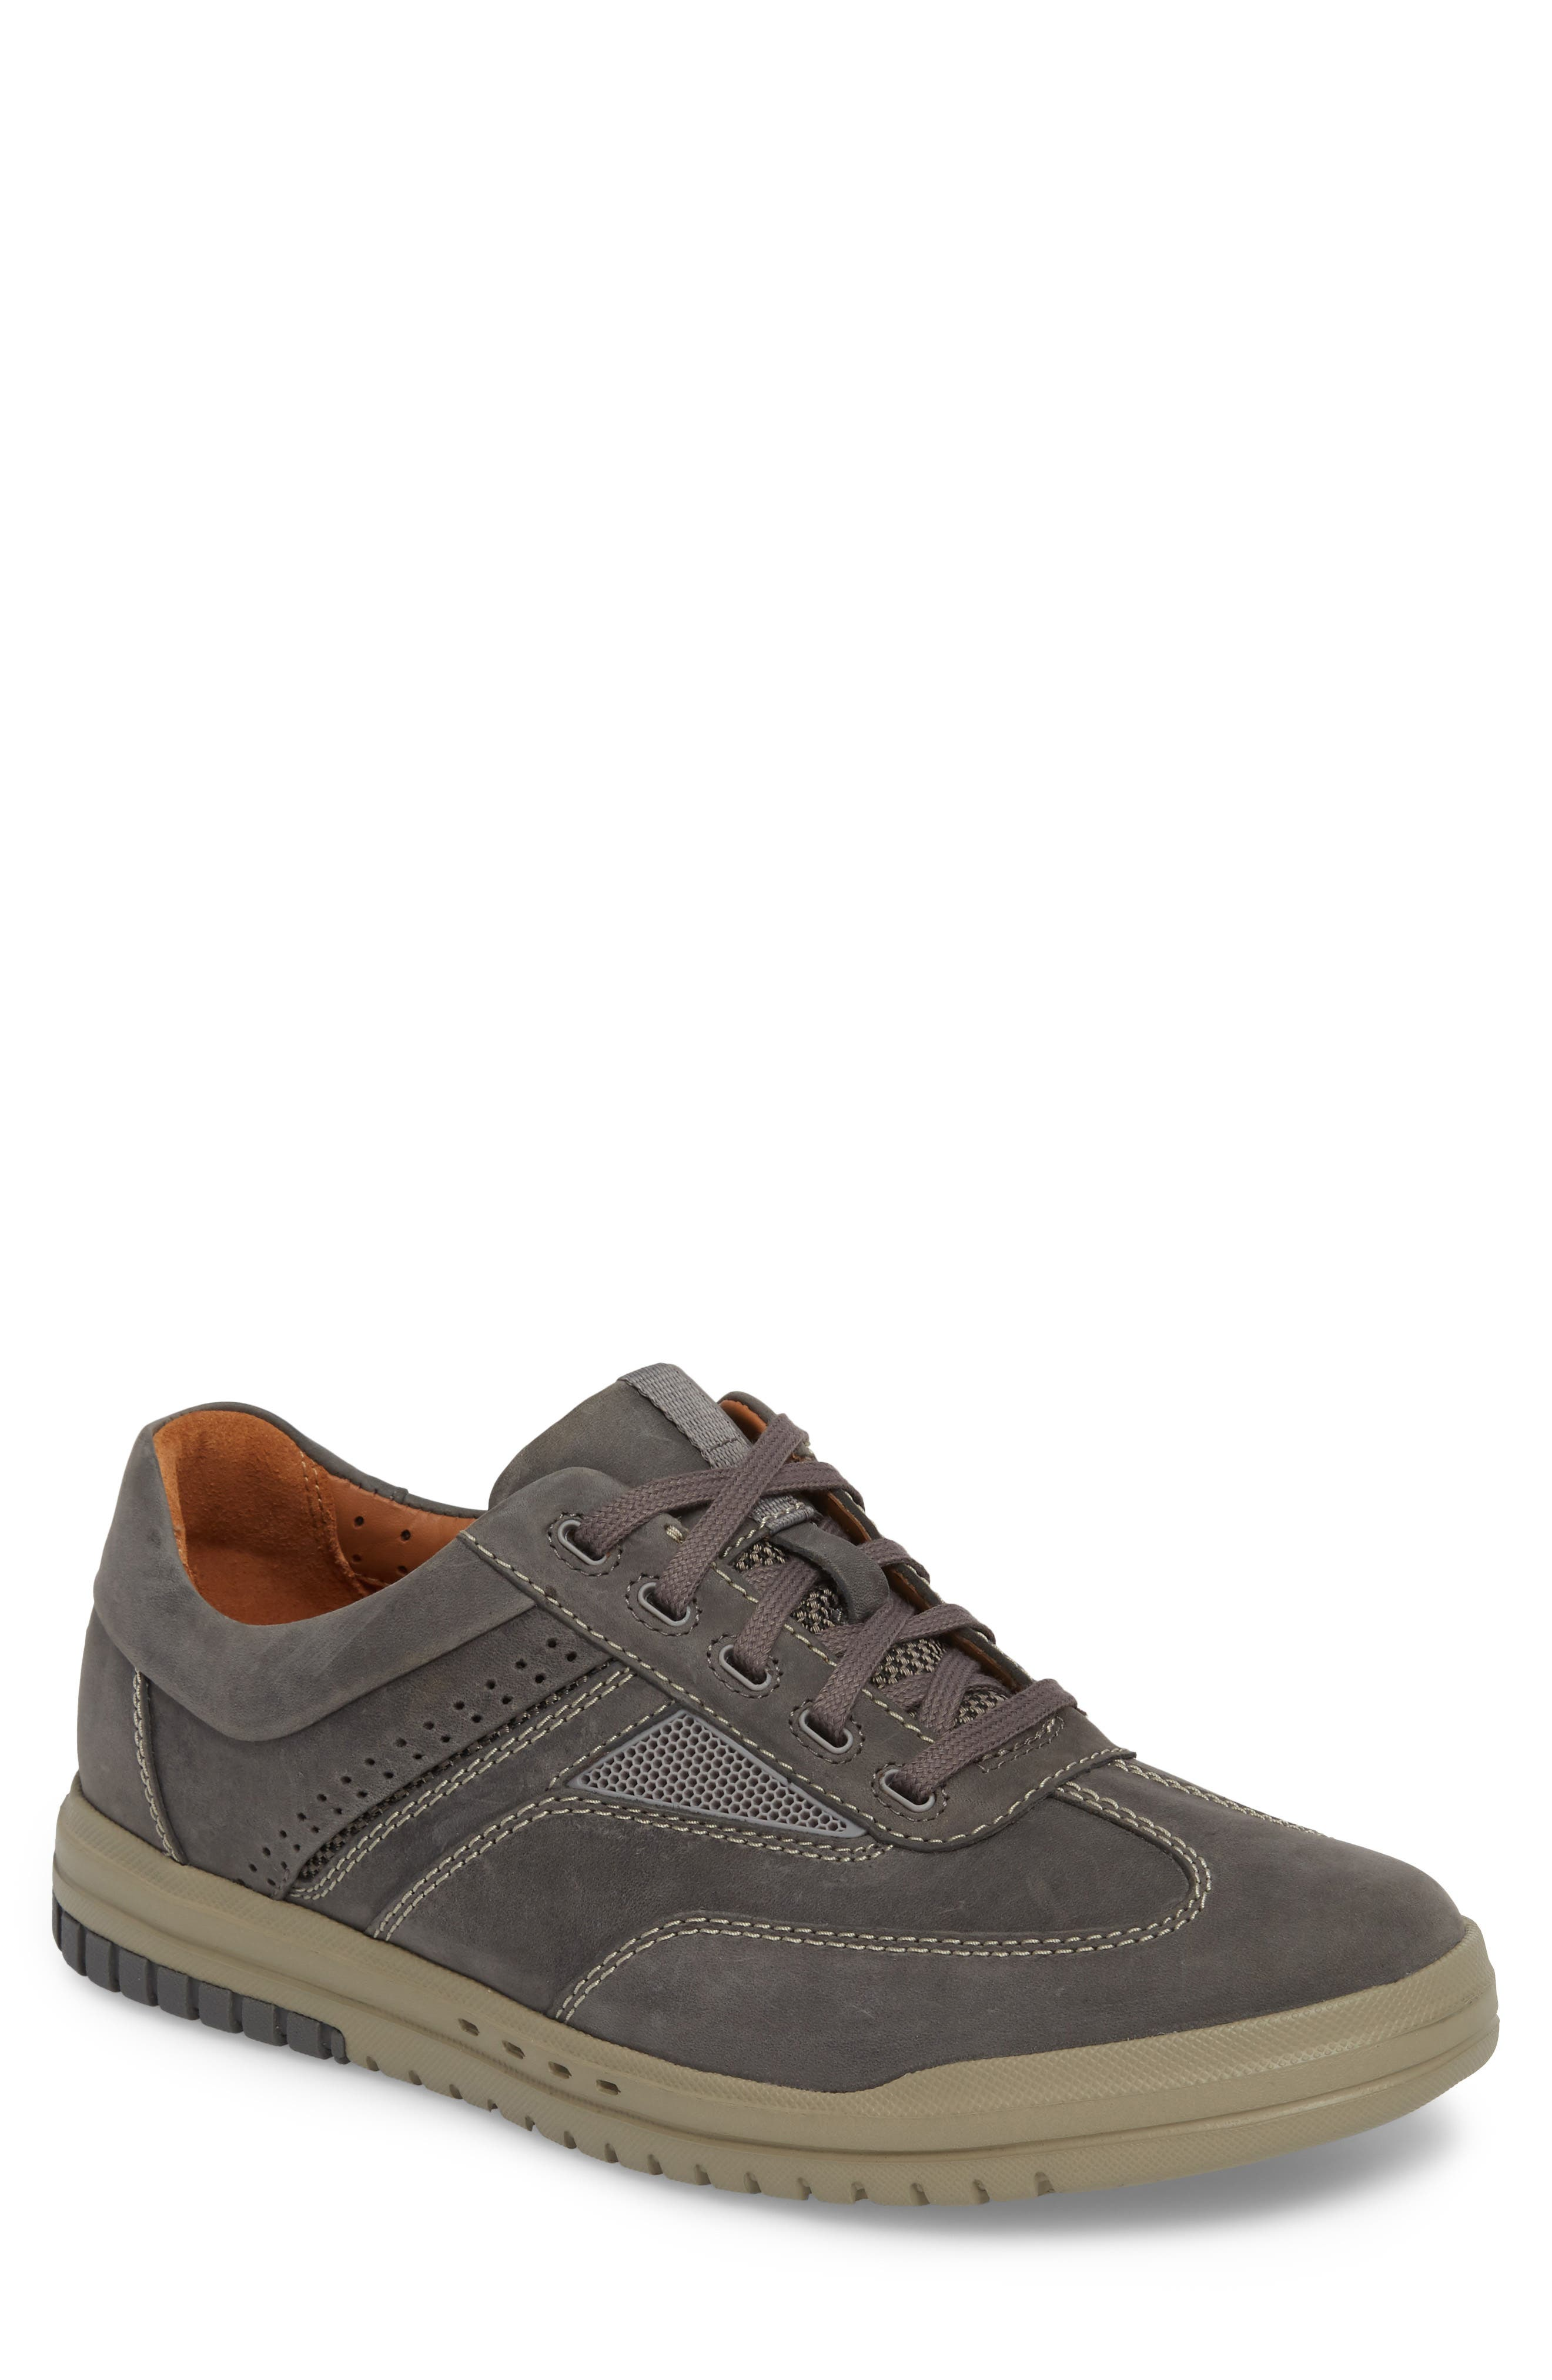 Unrhombus Low Top Sneaker,                         Main,                         color, Dark Grey Leather